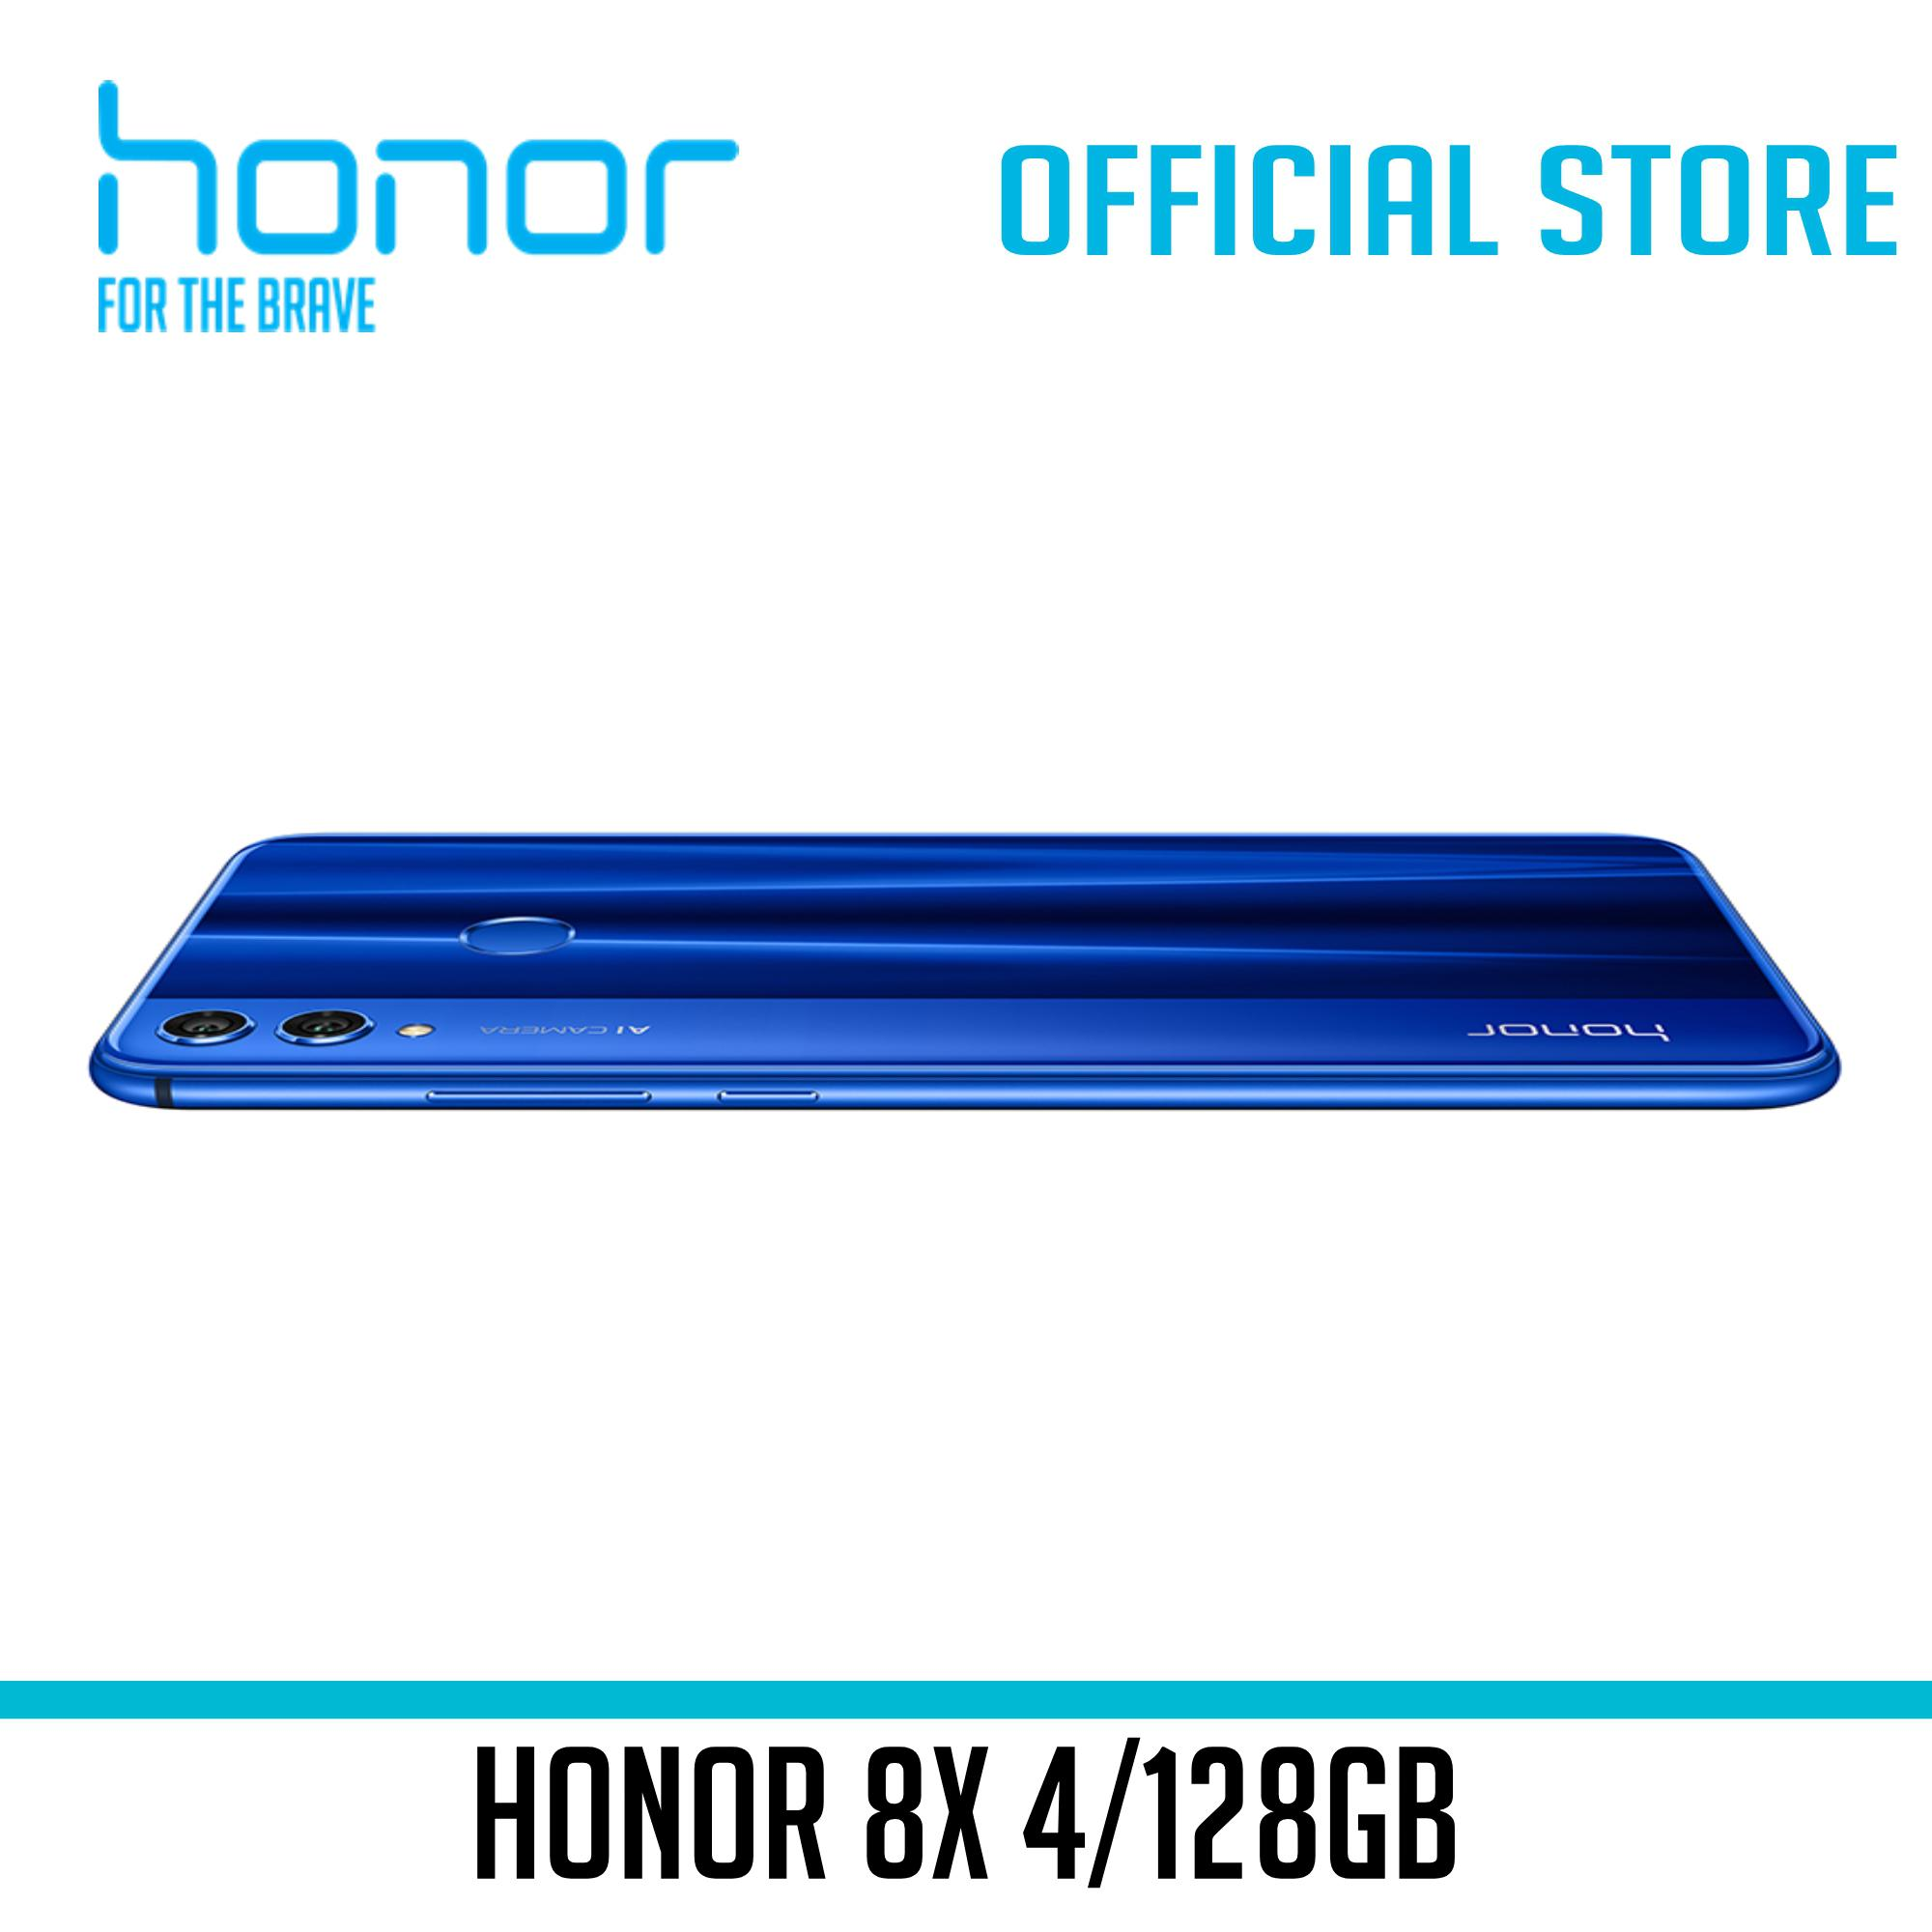 Honor 8X 4/128GB - Free Honor 8x Exclusive Gift Box